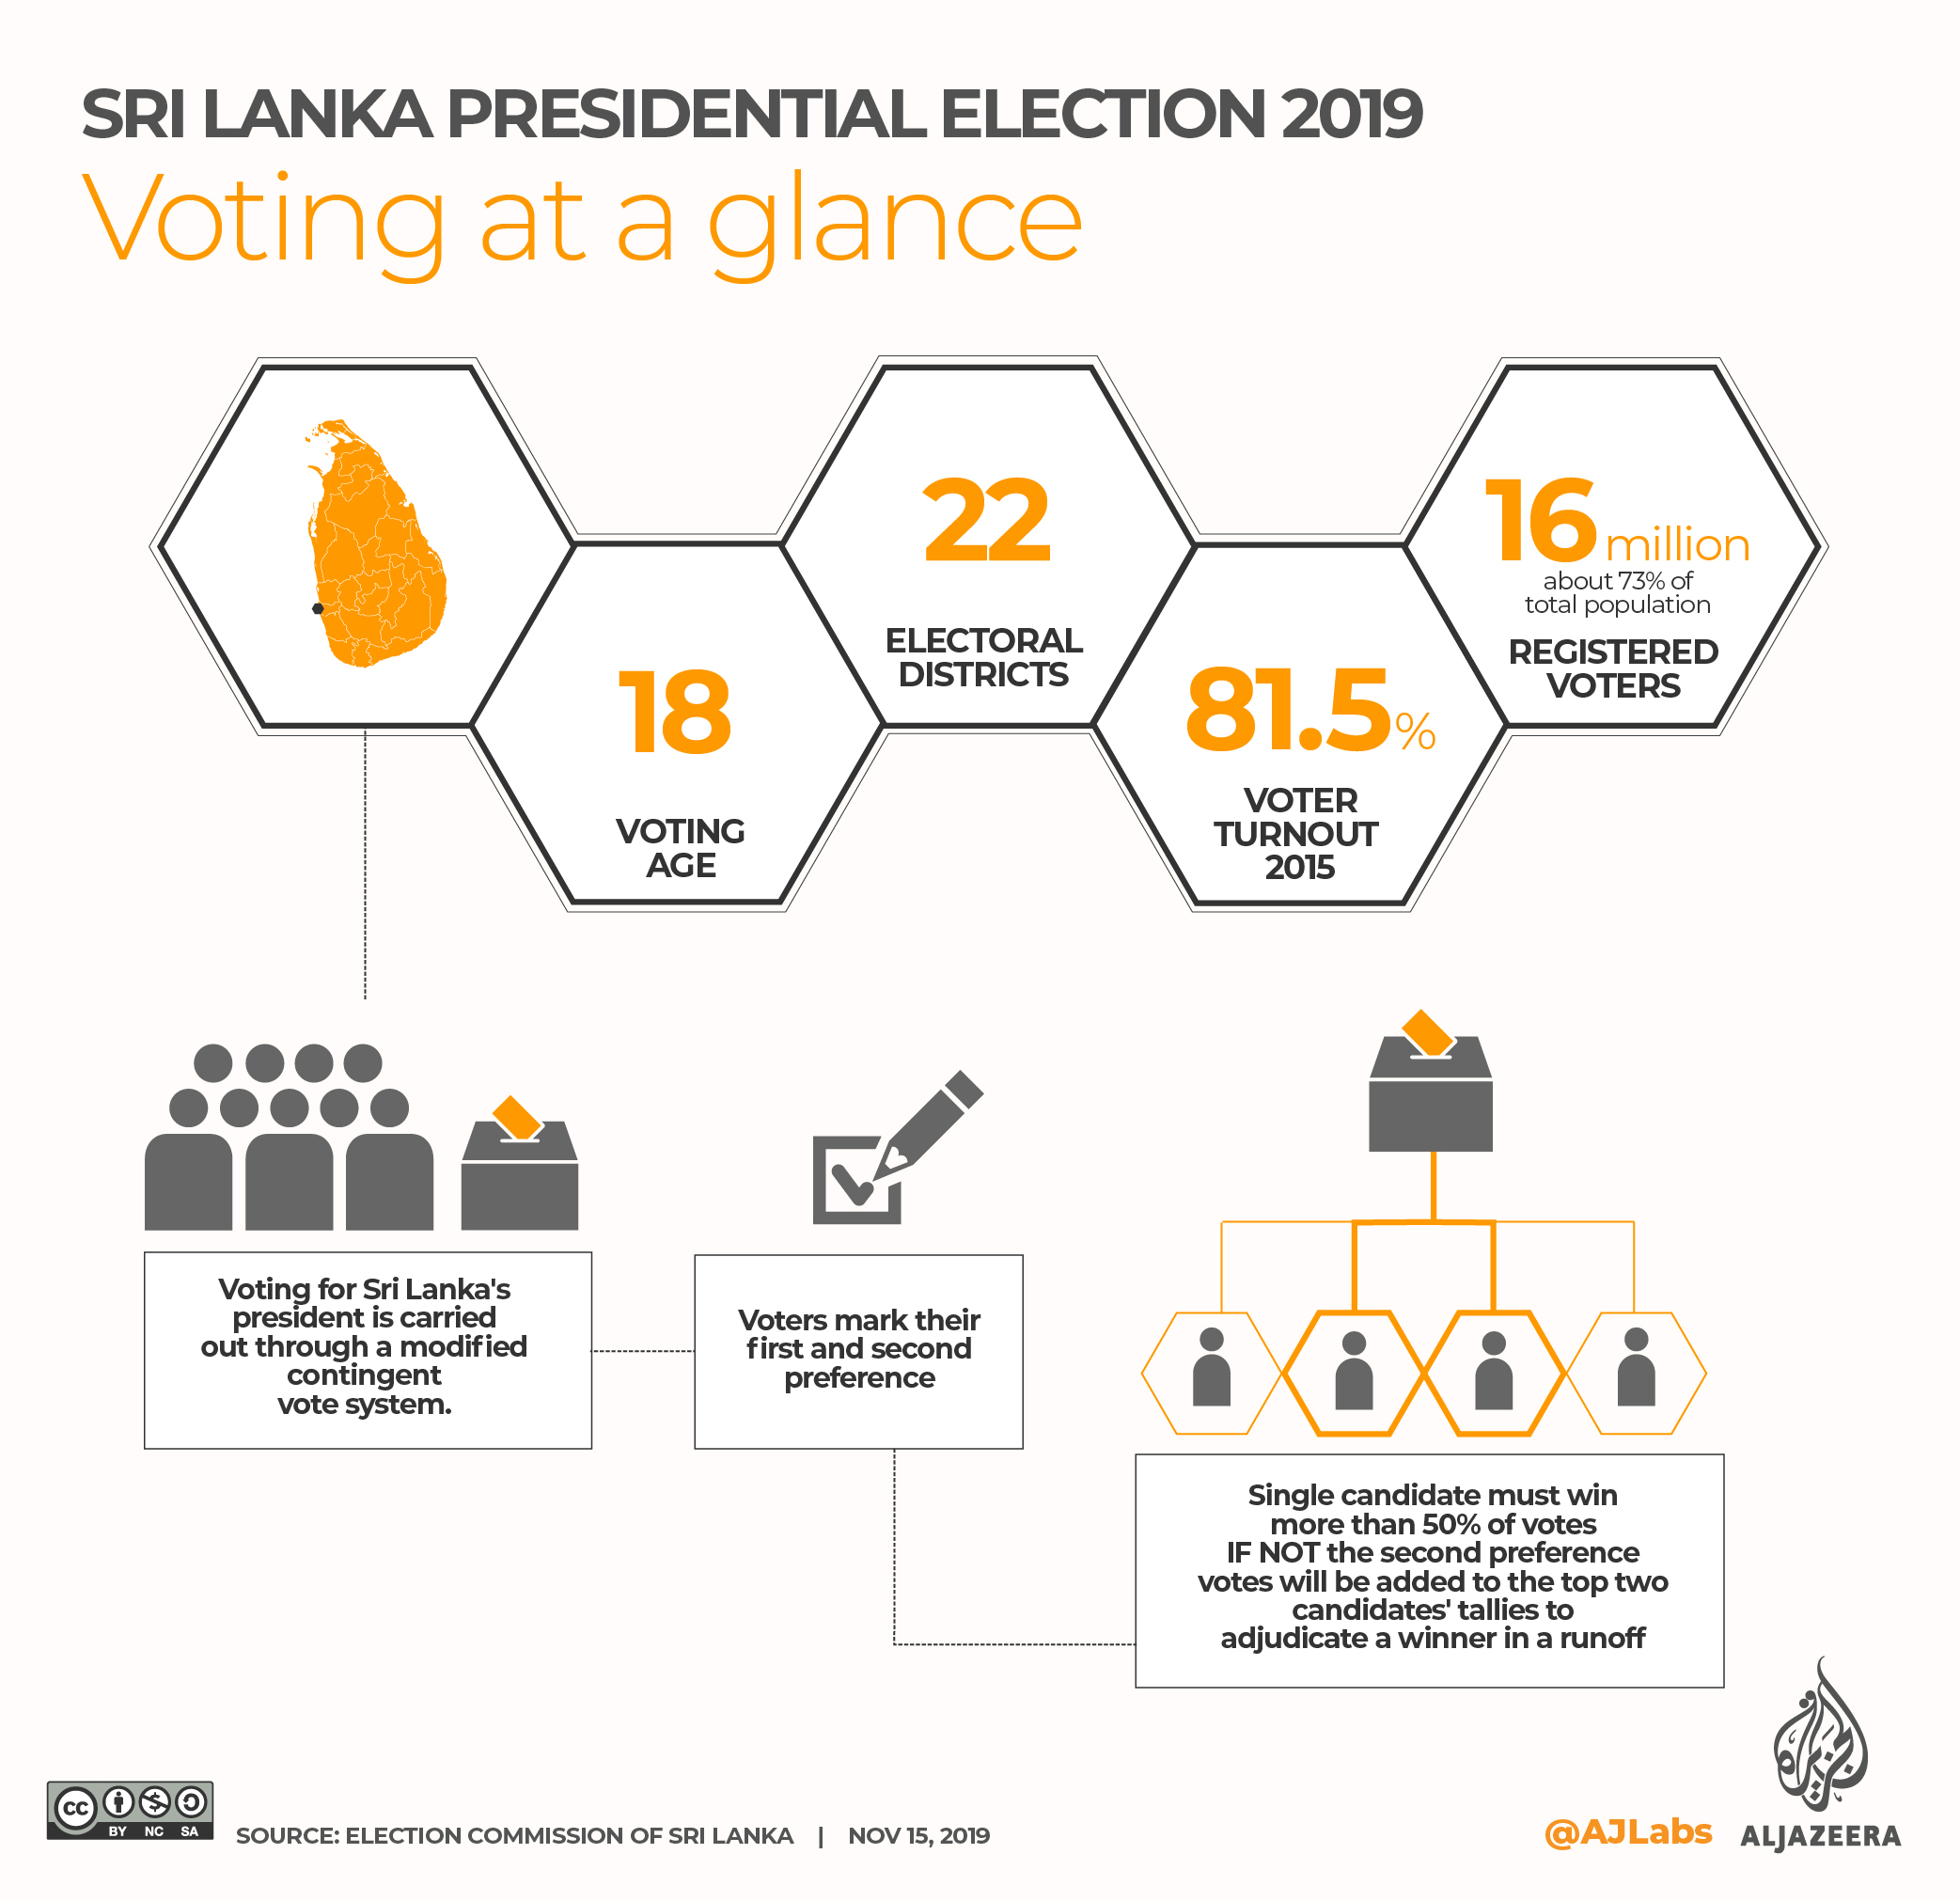 INTERACTIVE: SRI LANKA PRESIDENTIAL ELECTION 2019 - Voting at a glance